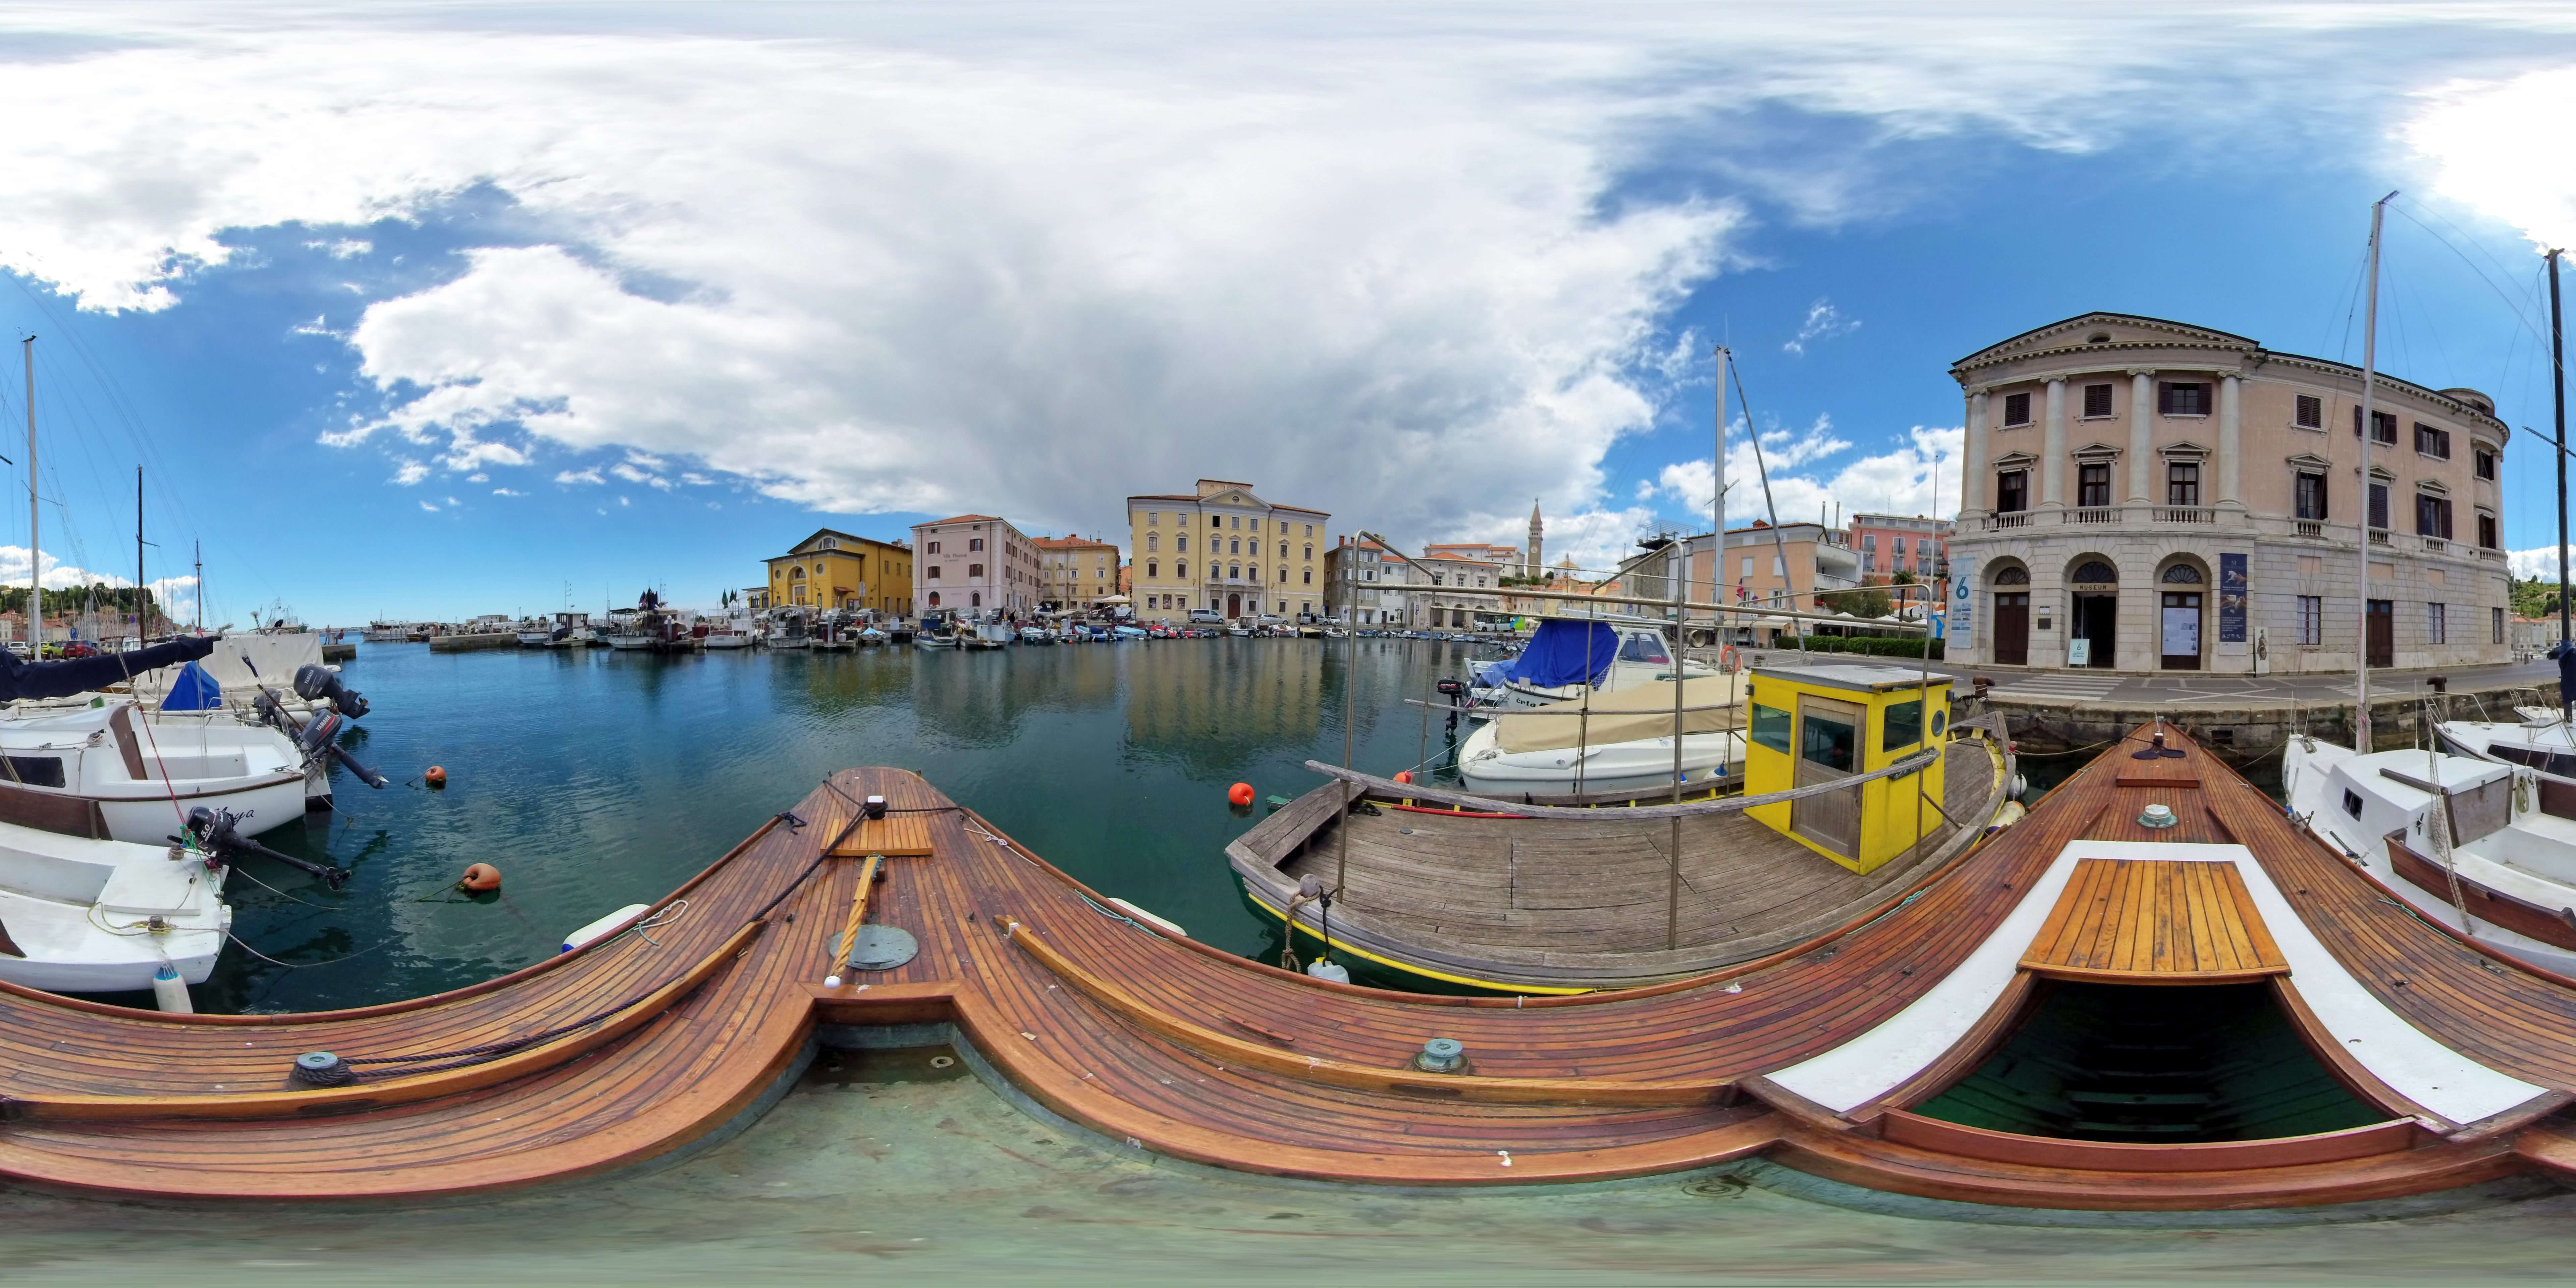 Virtual tour of the Port of Piran